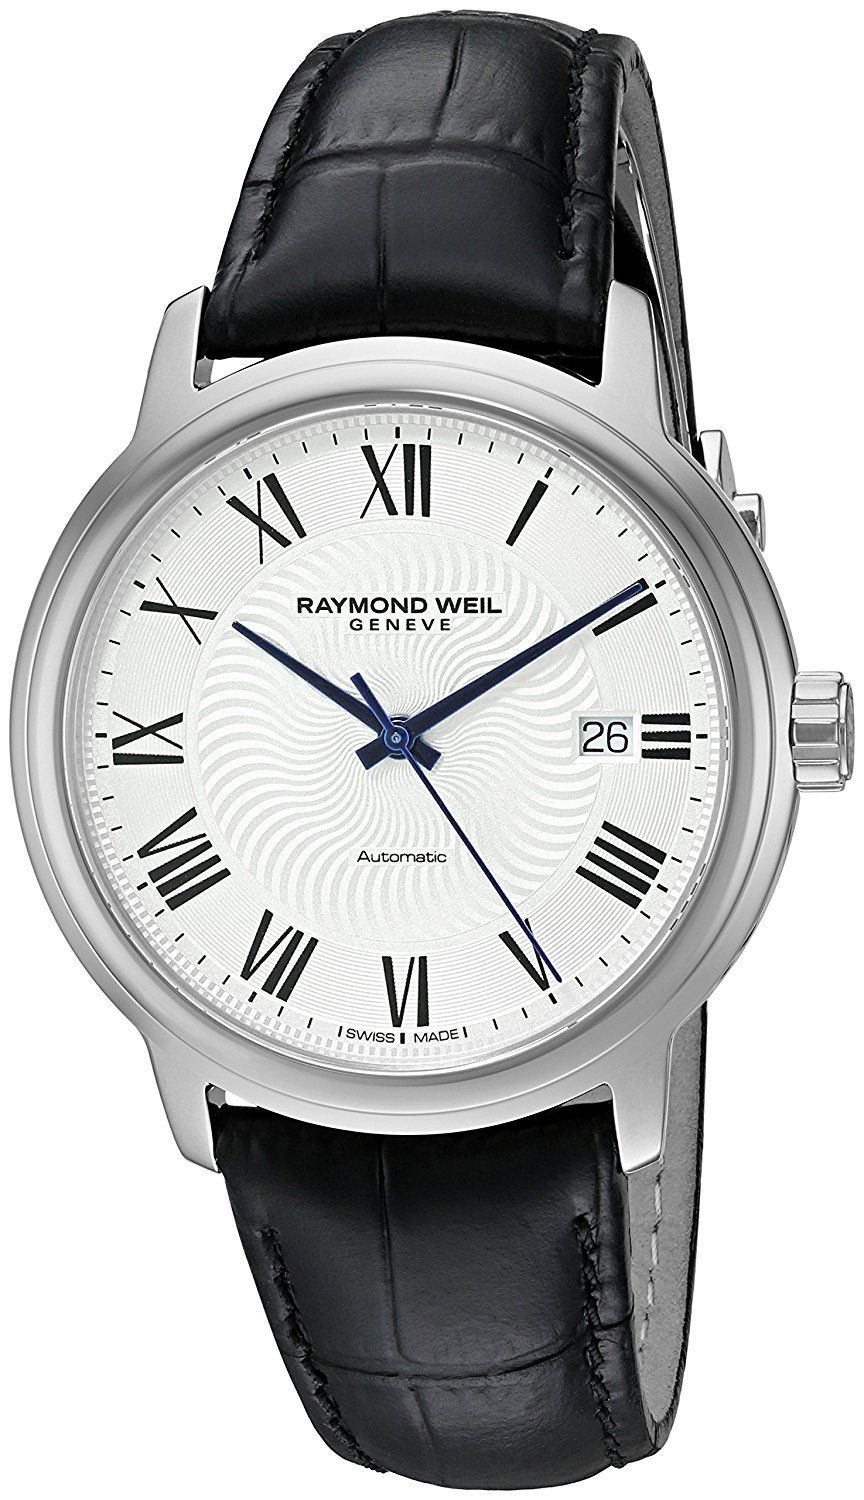 Raymond Weil Men S Maestro Swiss Stainless Steel And Leather Automatic Watch Color Black Model 2237 Stc 00659 Fashionwatches Luxurywatches Dexclusivewa